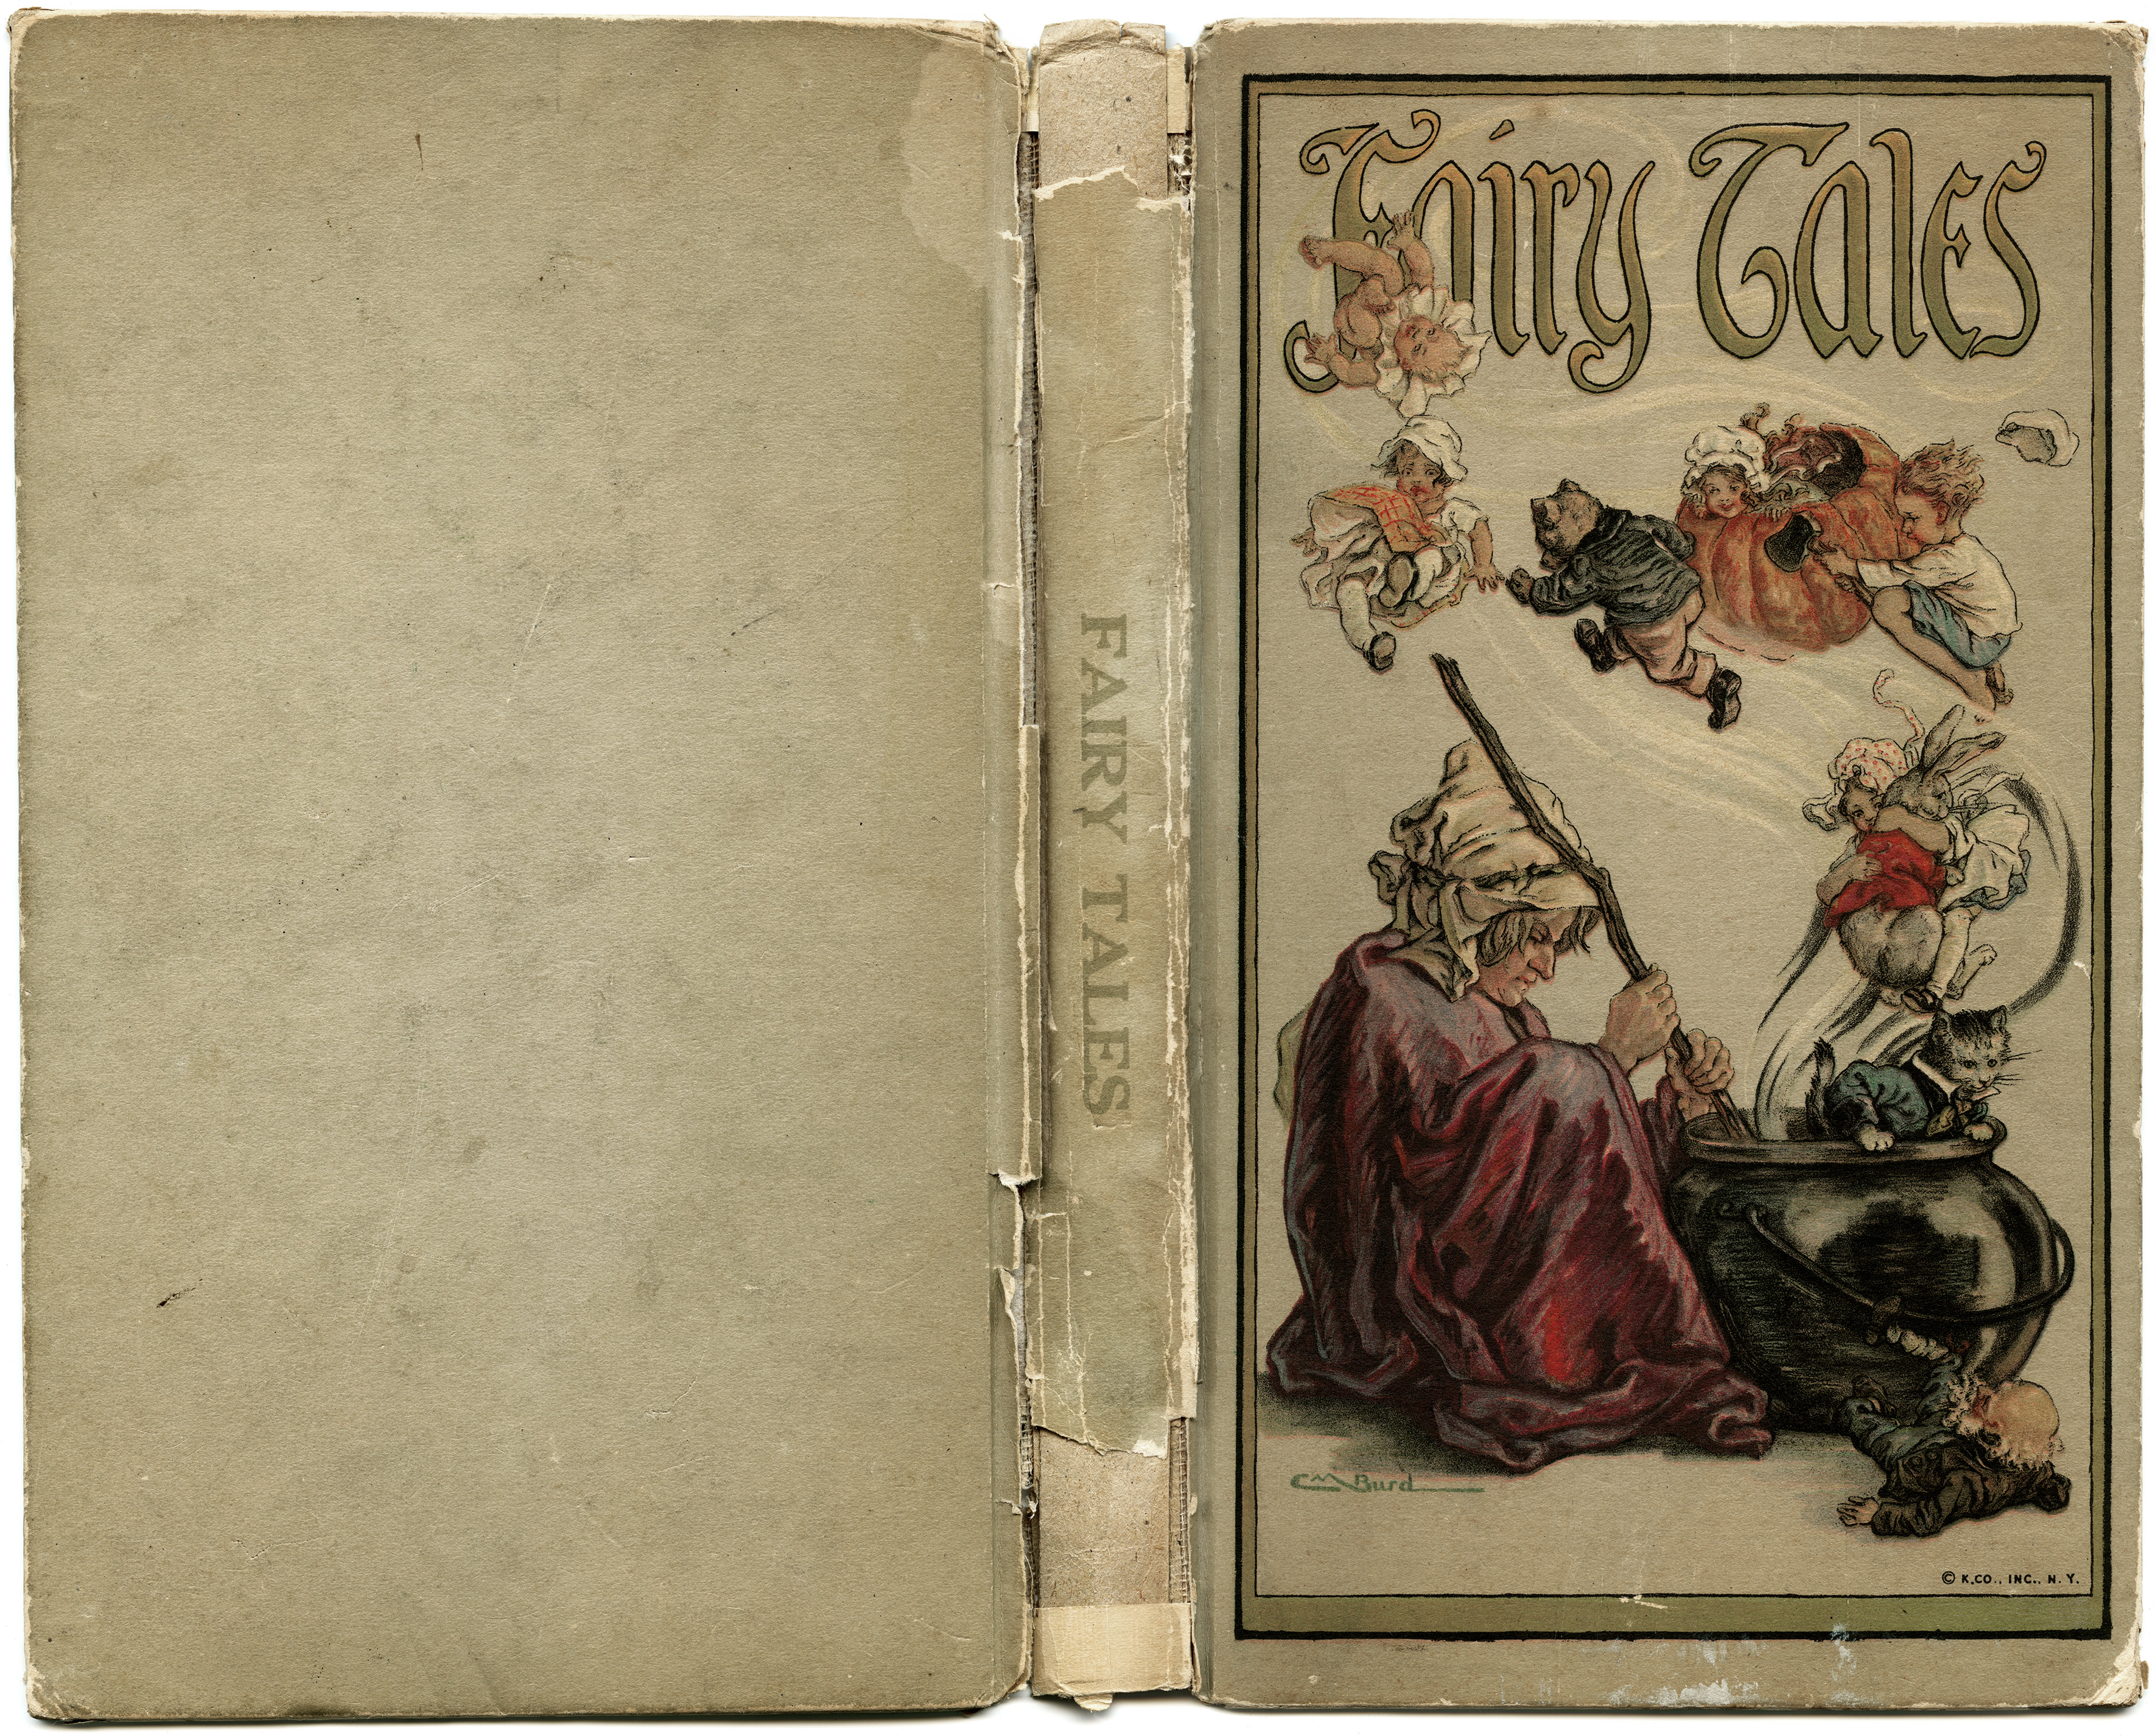 Free vintage image fairy tales book cover old design for Fairy tale book cover template